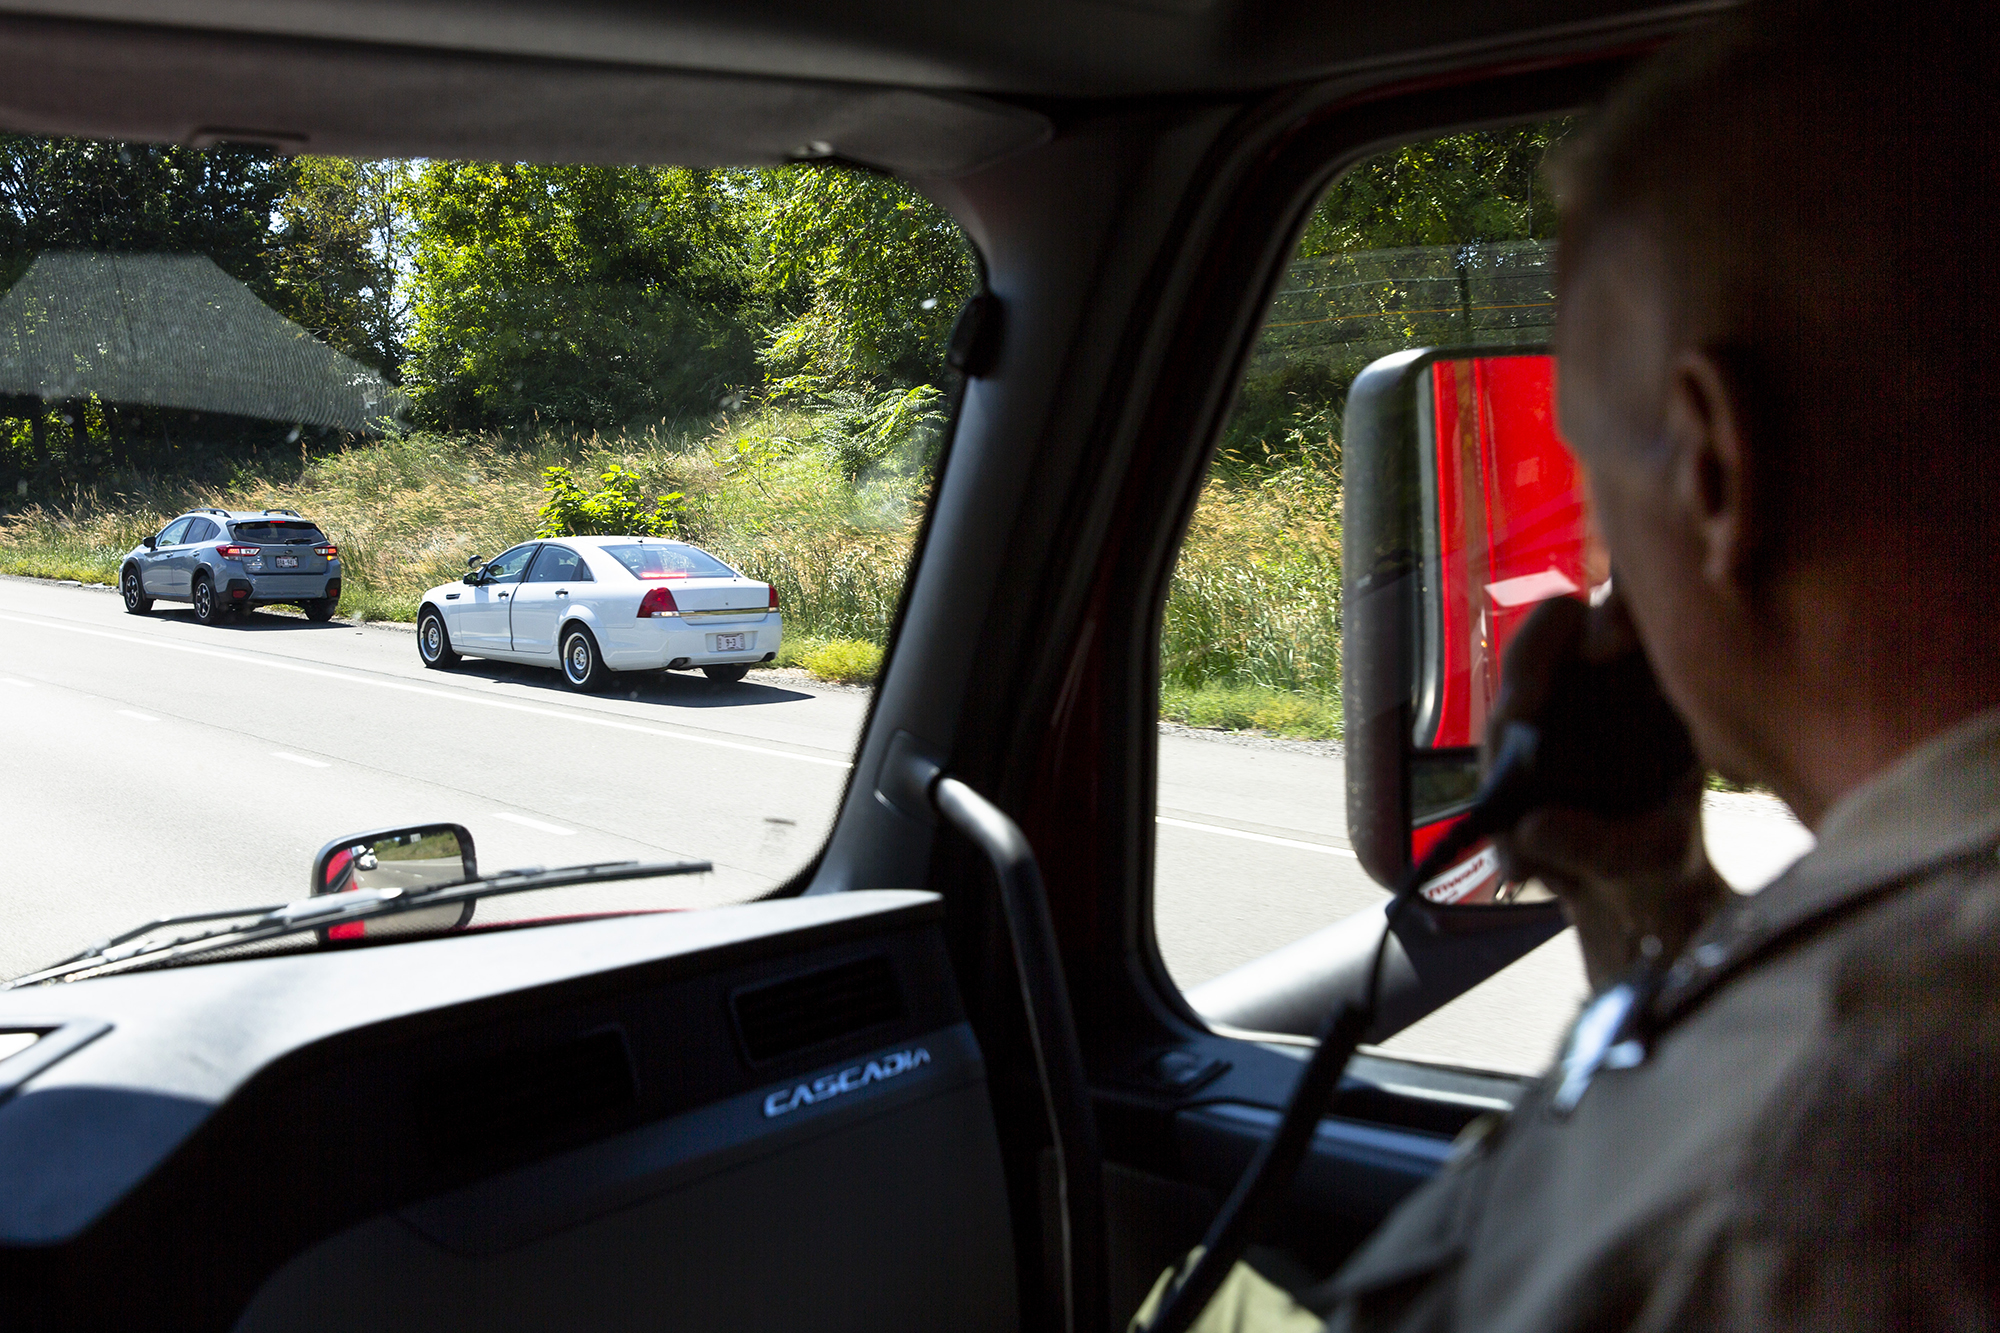 Illinois State Police Trooper Sean Ramsey, the safety education officer for District 9, watches as another trooper pulls over a vehicle they spotted with a driver texting on his cell phone Wednesday, Sept. 12, 2018 on Interstate 55 between Pawnee and Williamsville. The State Police conducted a four-hour Trooper-in-a-Truck detail on the interstate, patrolling from a tractor-trailer where they could more easily see drivers using their cell phones. The collaboration with the Illinois Trucking Association is meant to raise awareness of the dangers of distracted driving and resulted in 13 citations. The State Police have conducted two other patrols in Southern Illinois, this was the first in the Springfield area. [Rich Saal/The State Journal-Register]